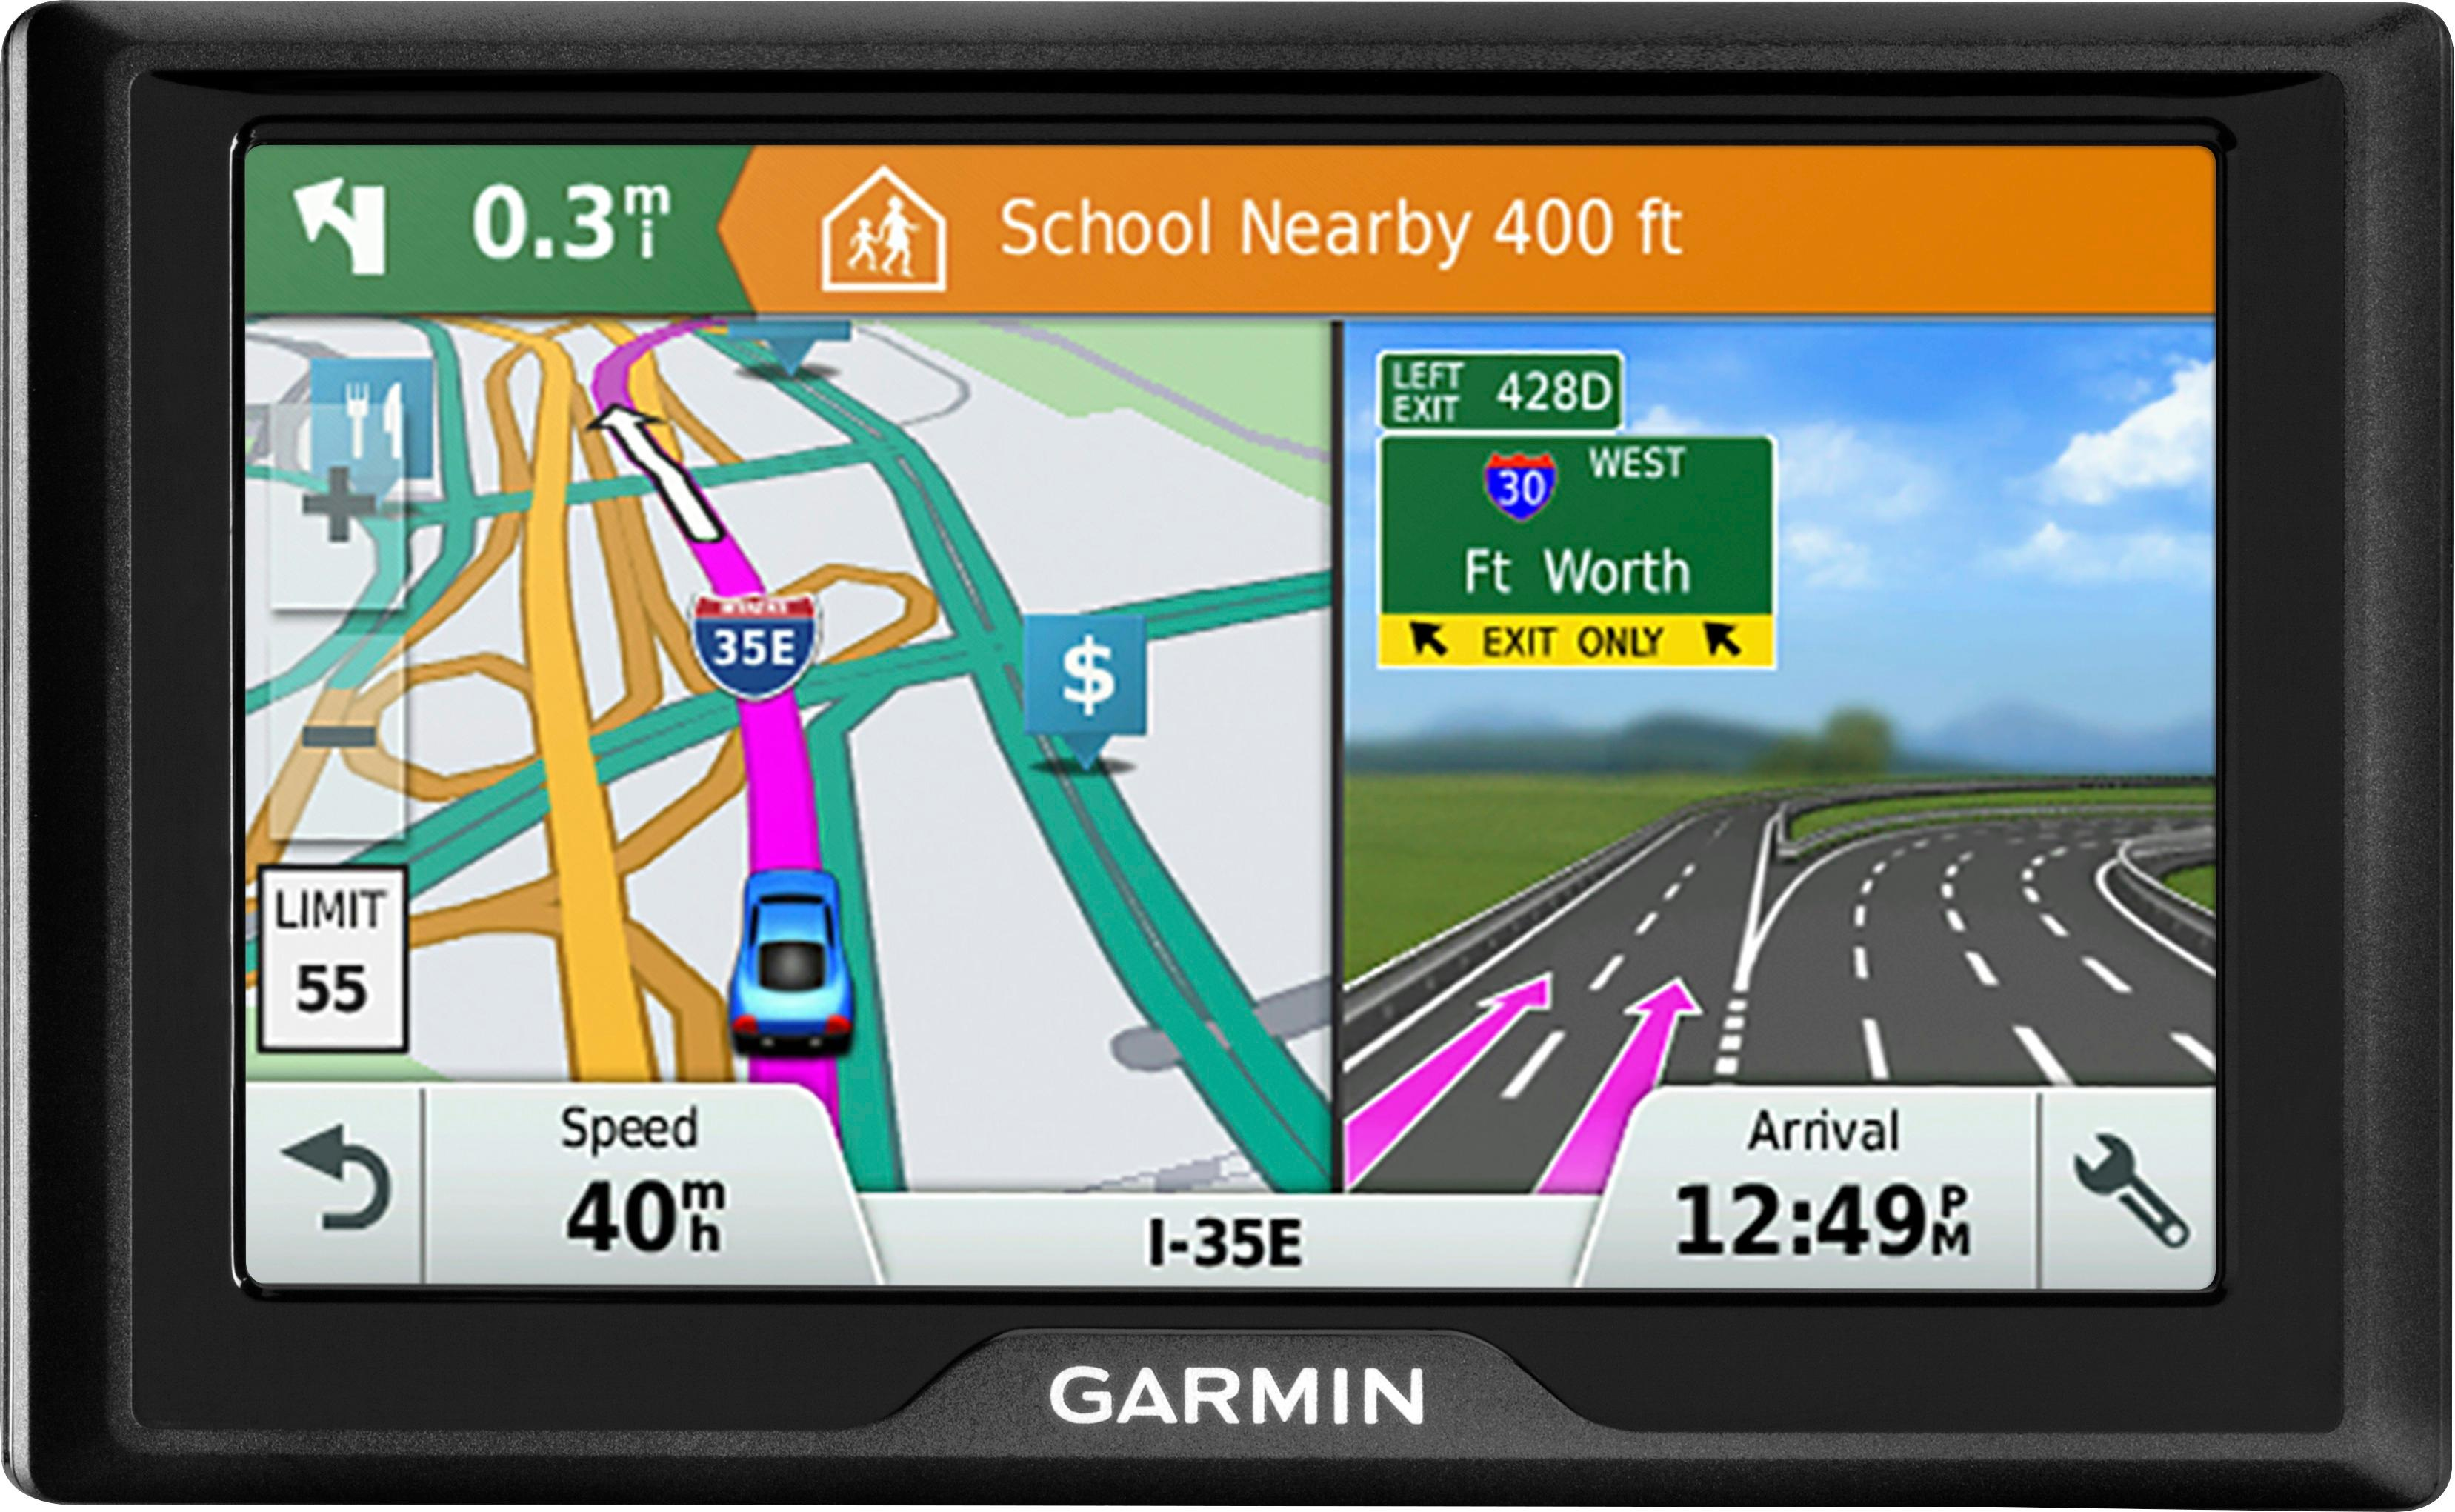 Garmin Nuvi 760 Wiring Diagram Online Manuual Of Gl1800 Fuse Schema Rh Renewire Today Ipod Charger Power